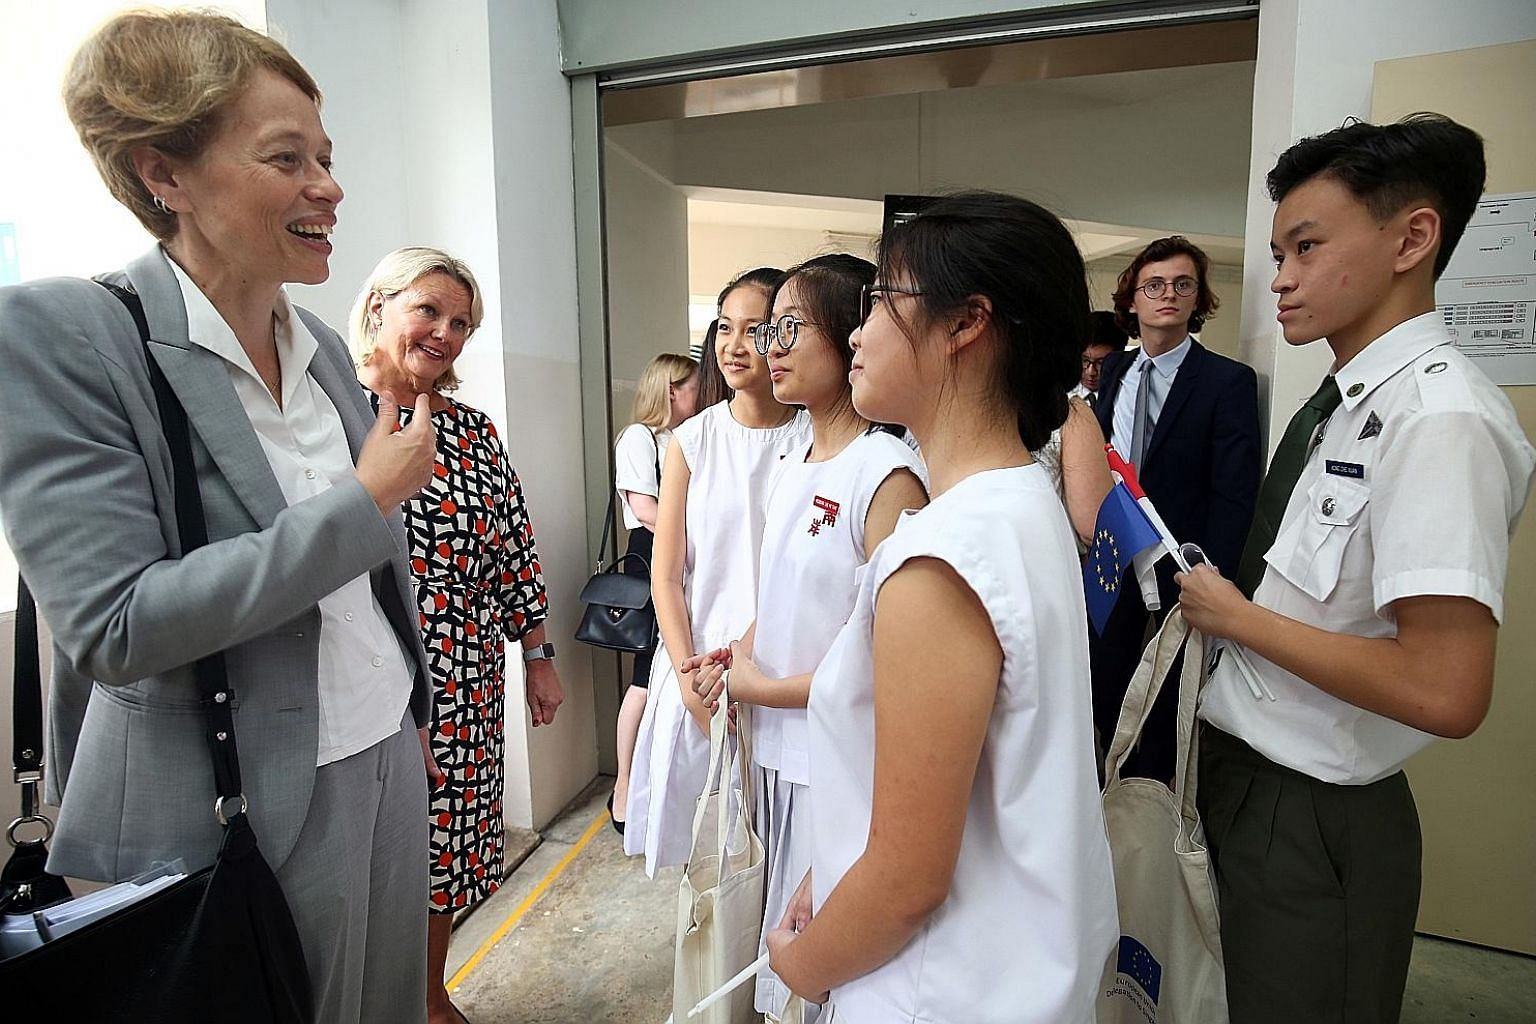 EU Ambassador to Singapore Barbara Plinkert (left) and Finnish Ambassador Paula Parviainen speaking to students after a panel discussion yesterday. European ambassadors will be visiting local schools to give talks on the EU.